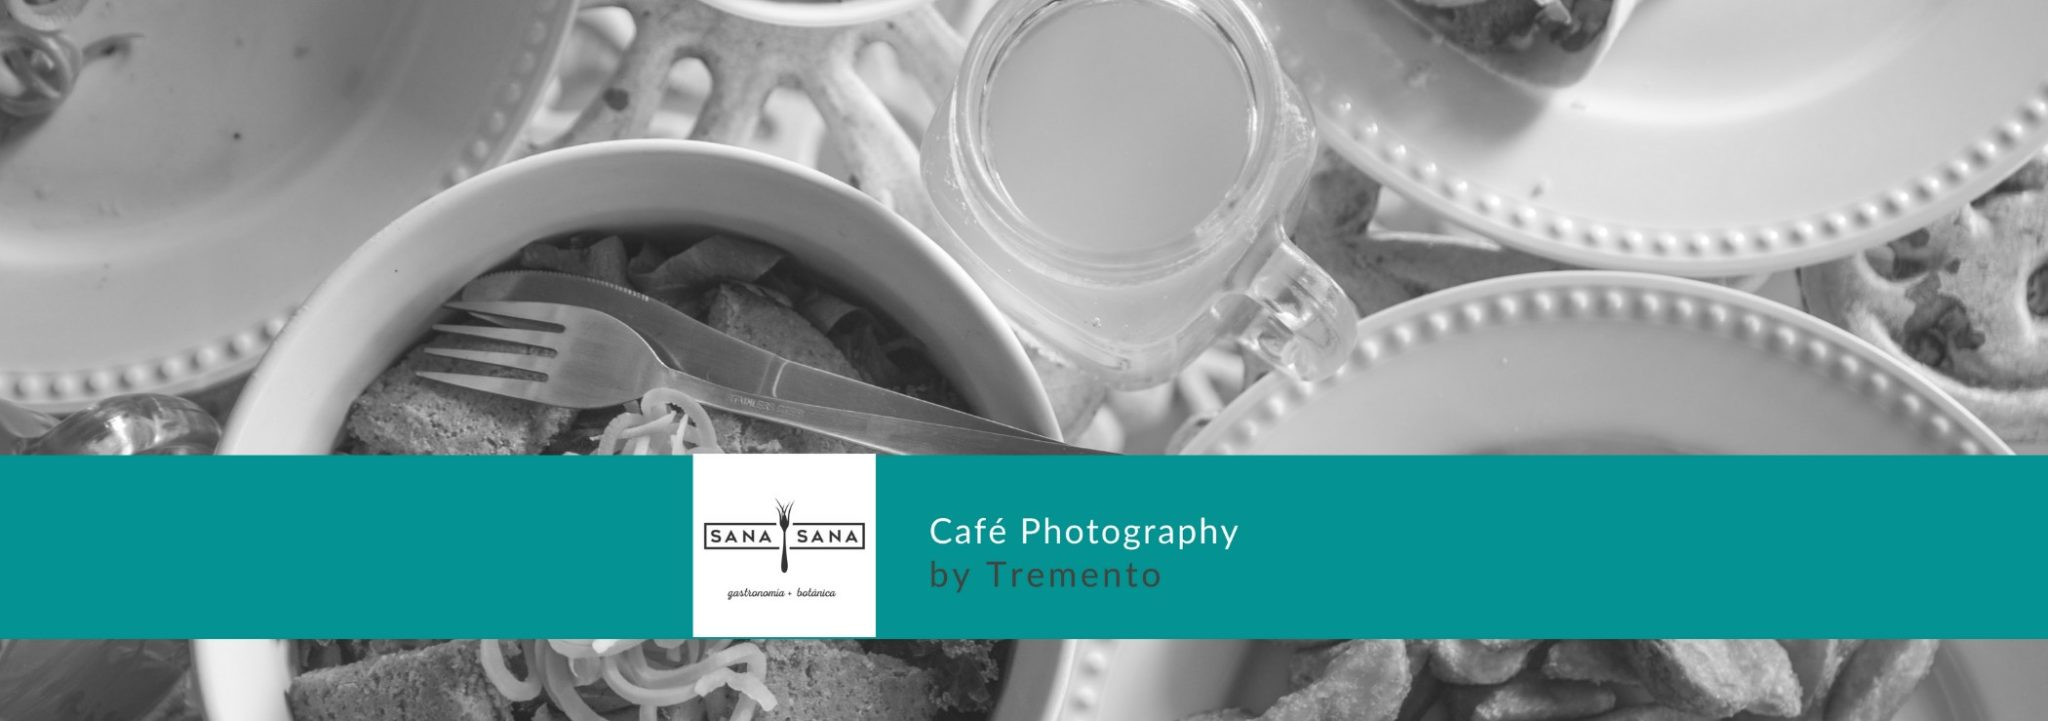 Tremento Portfolio Café Food Photography Sana Sana